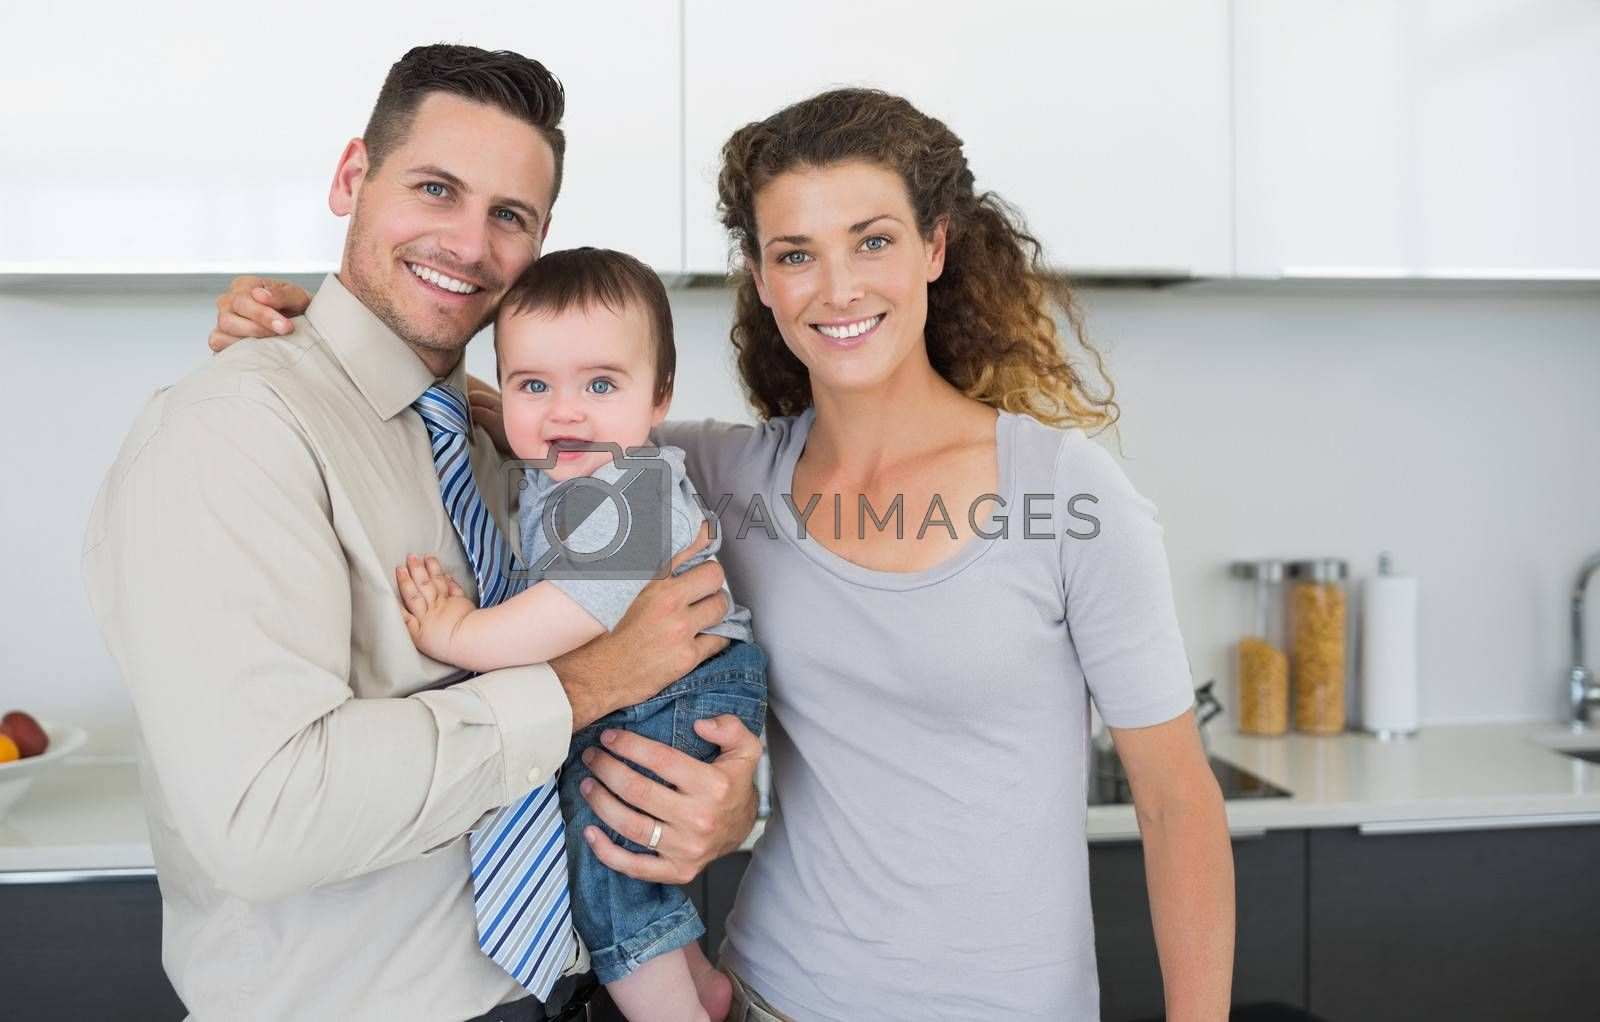 Portrait of smiling parents with cute baby boy in kitchen